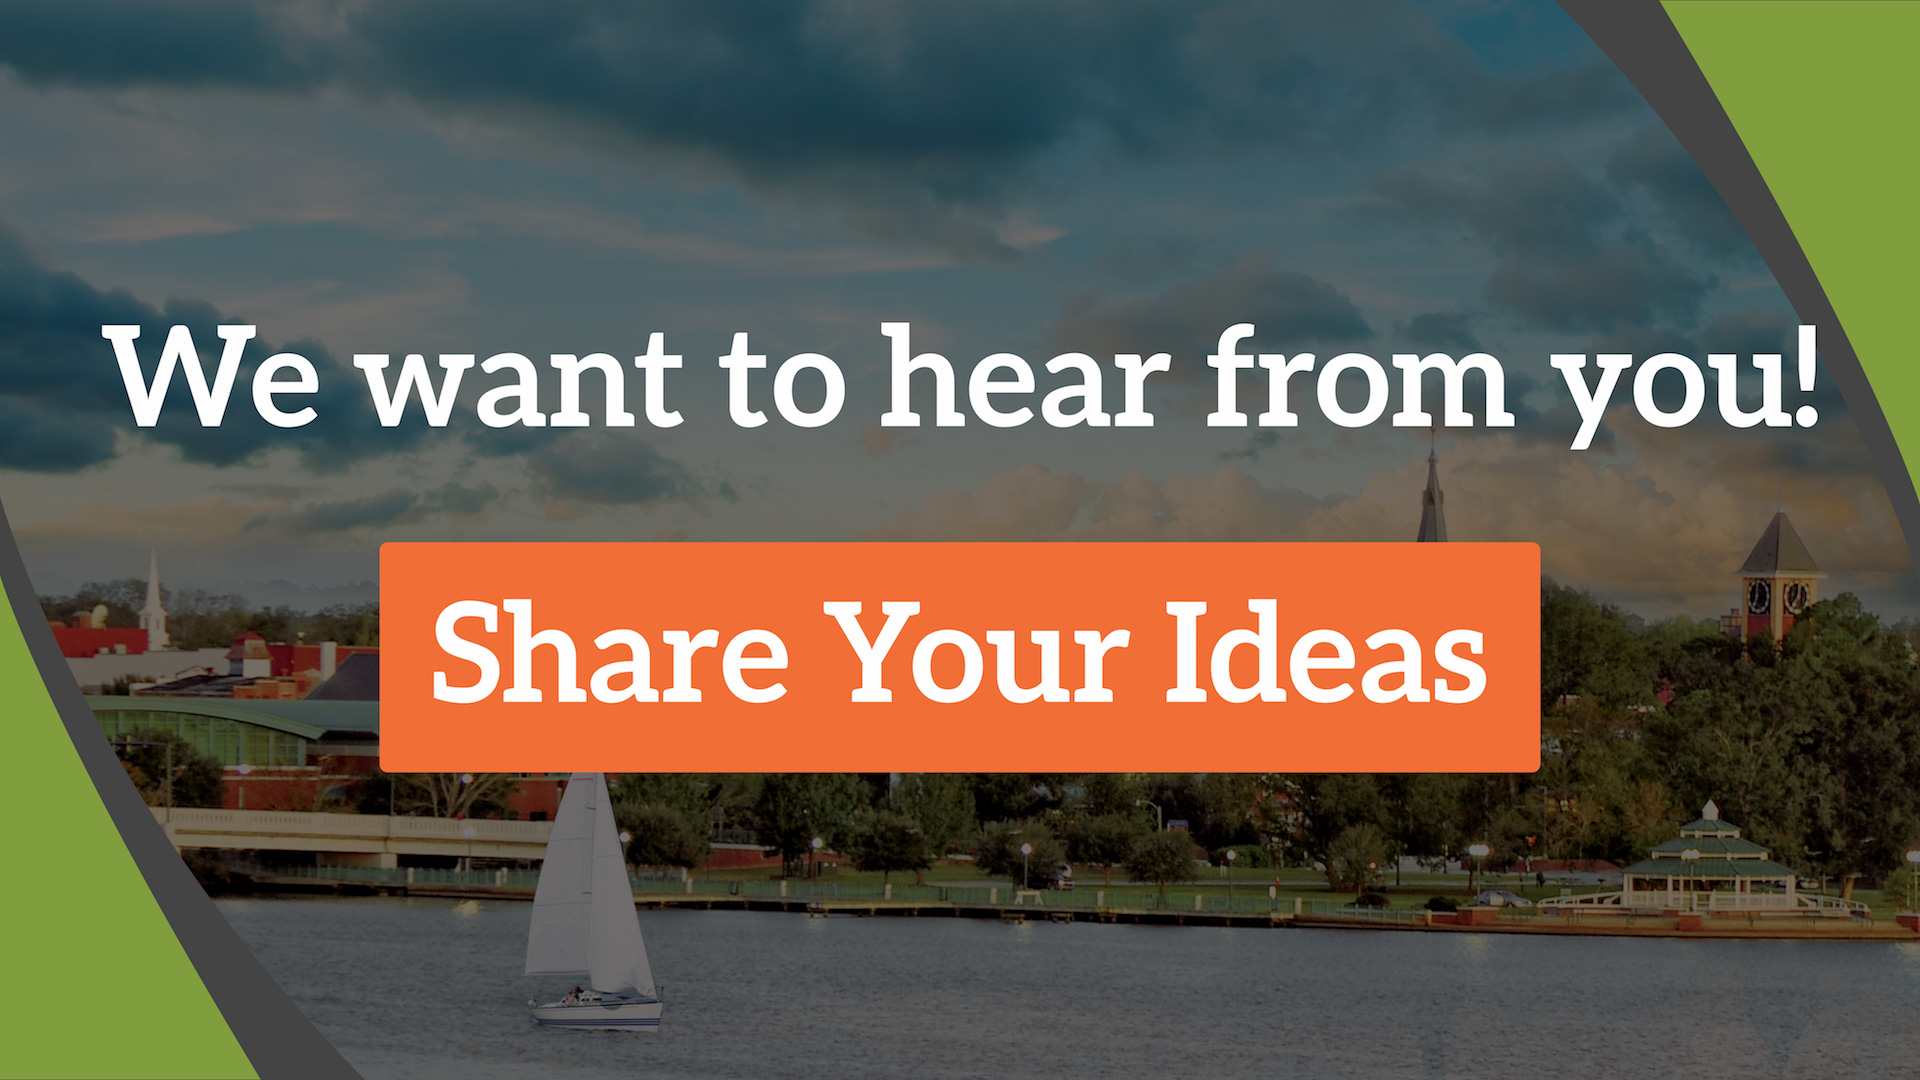 We want to hear from you! Share your ideas here.